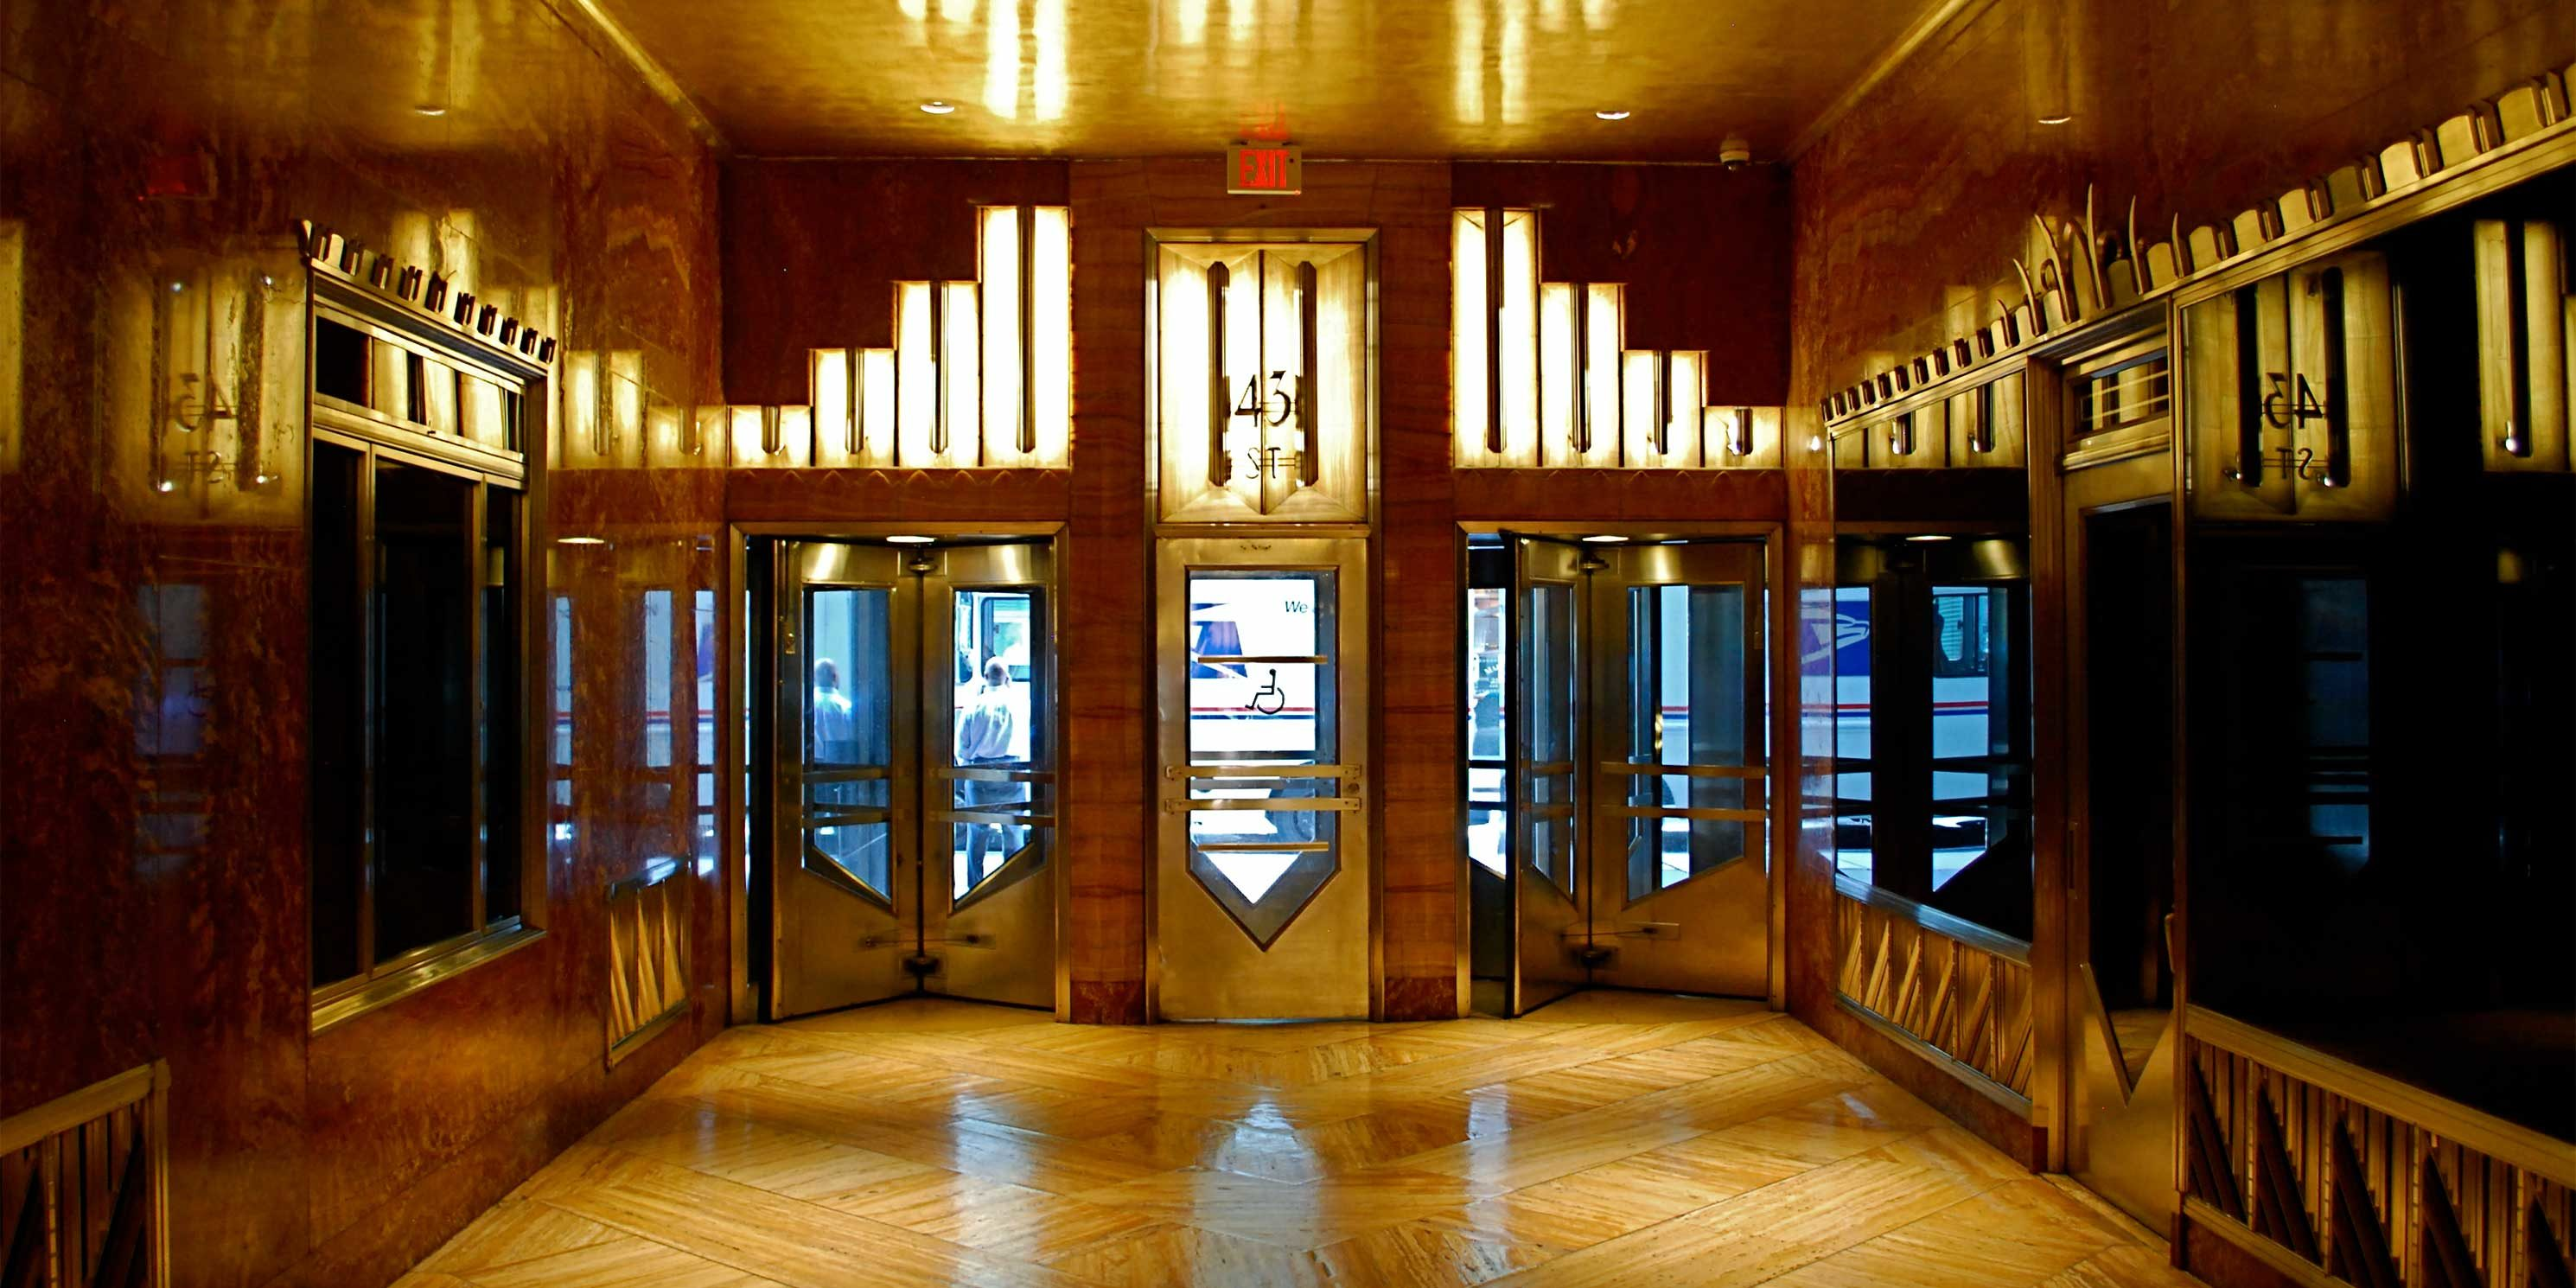 lobby and revolving doors in the Chrysler Building